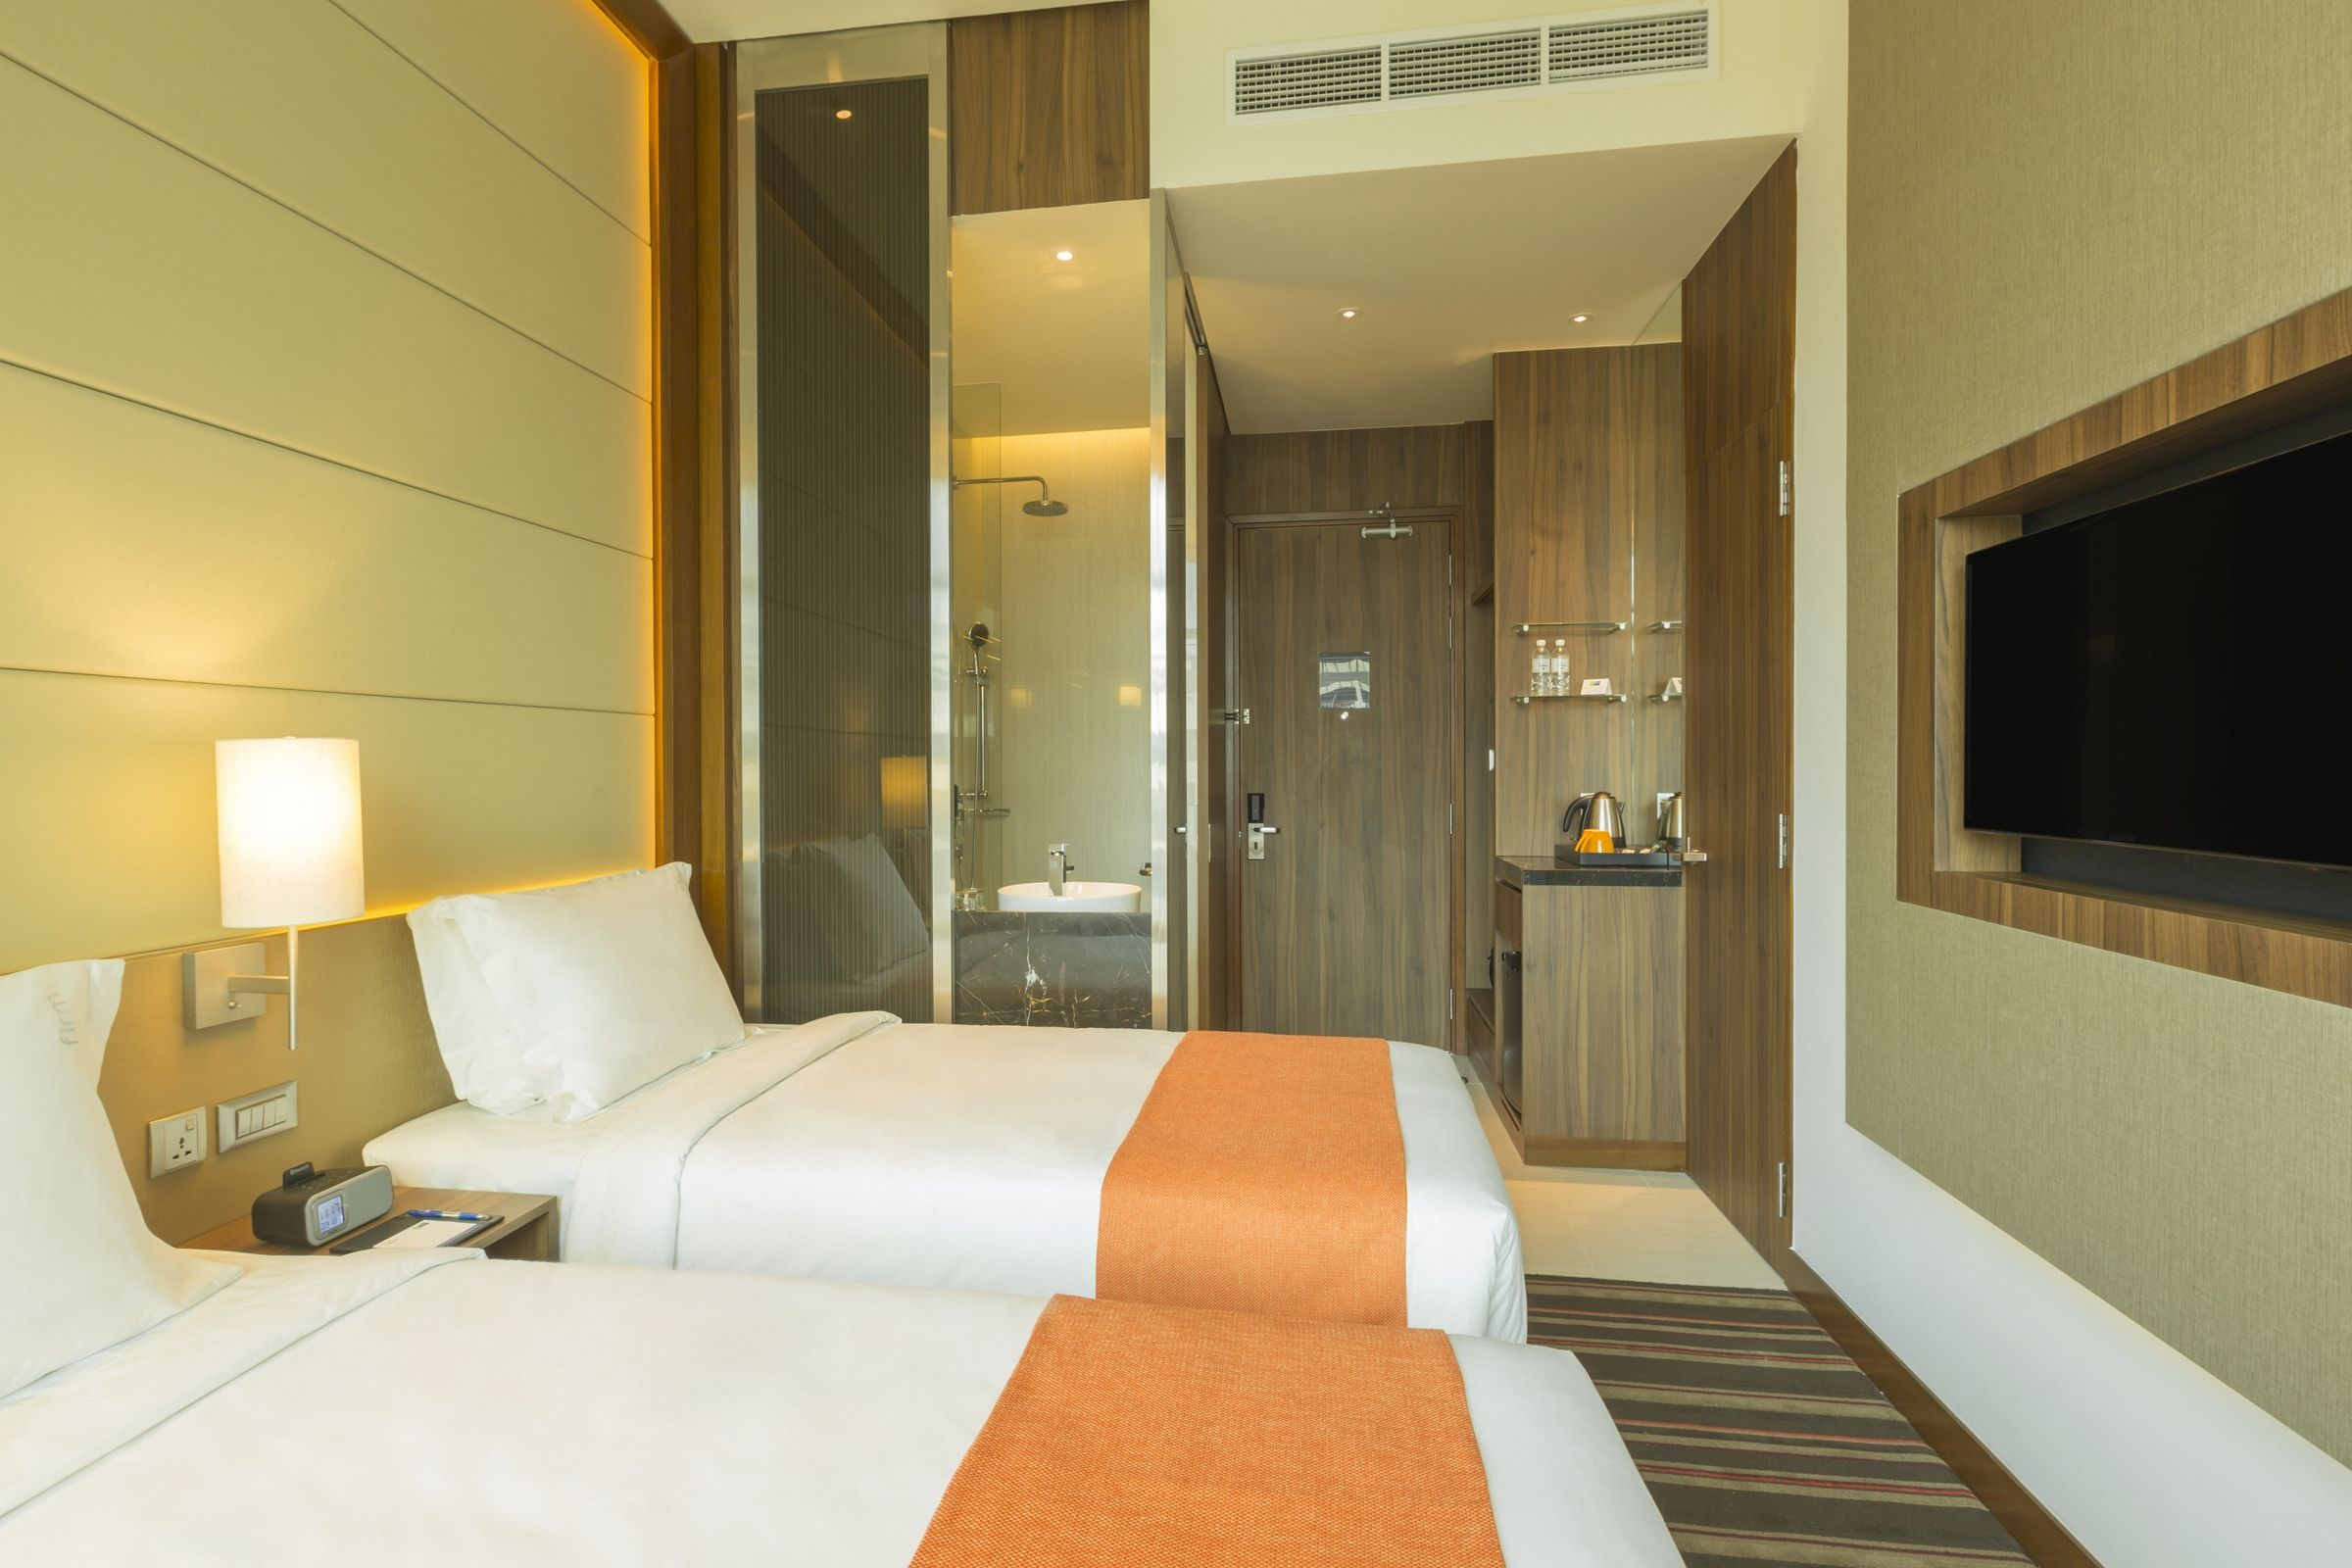 2 Single Beds Room with Free Express Start Breakfast and Wi-Fi Access throughout the hotel.